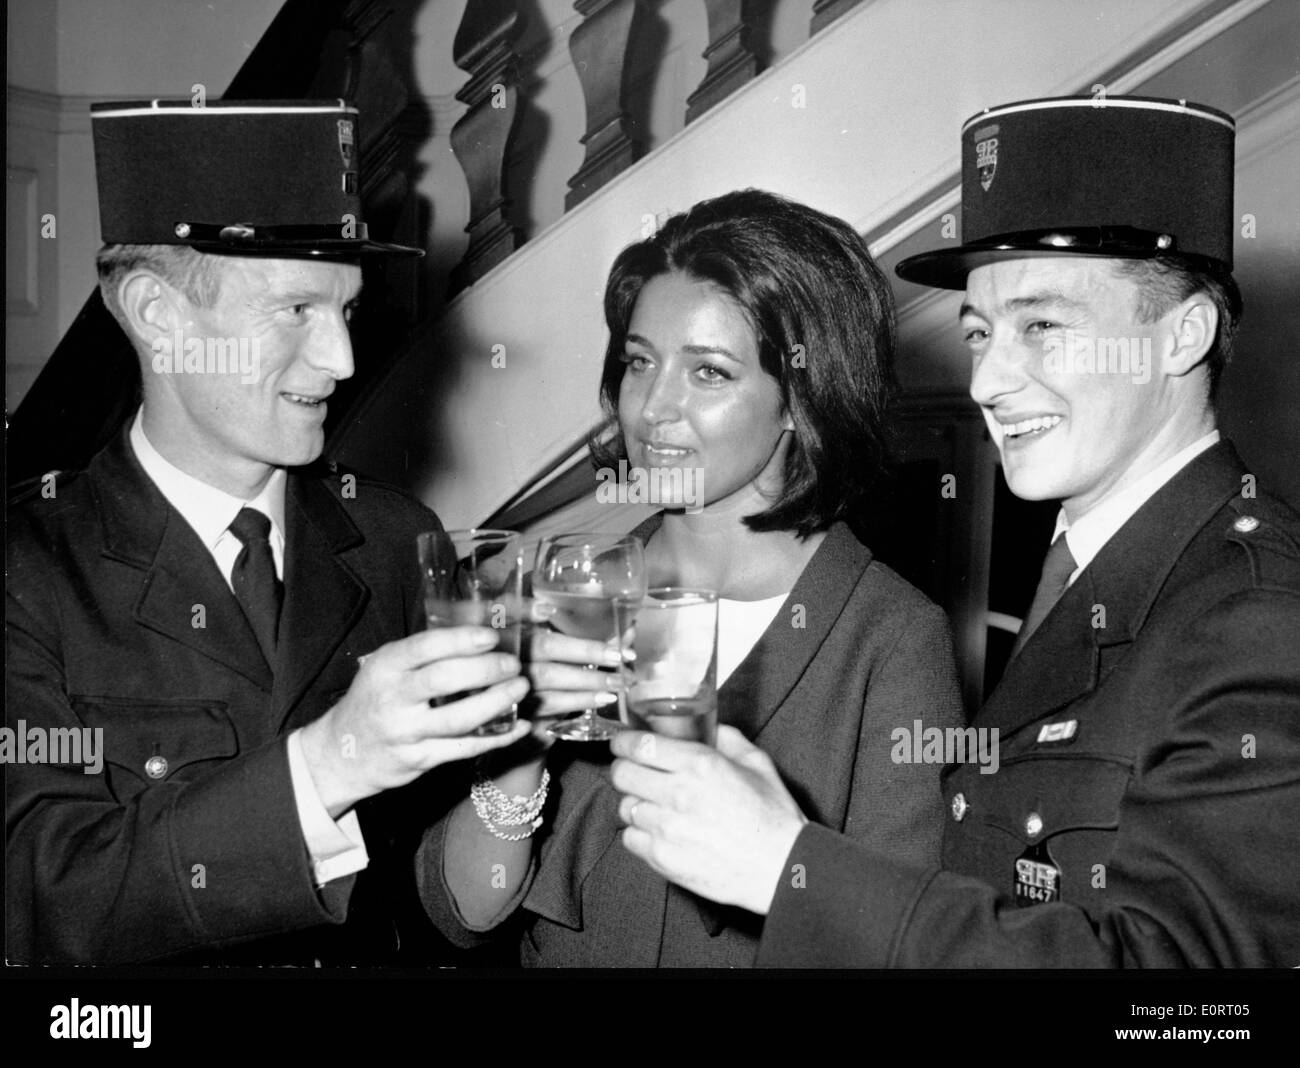 Actress Francoise Fabian toasts police - Stock Image